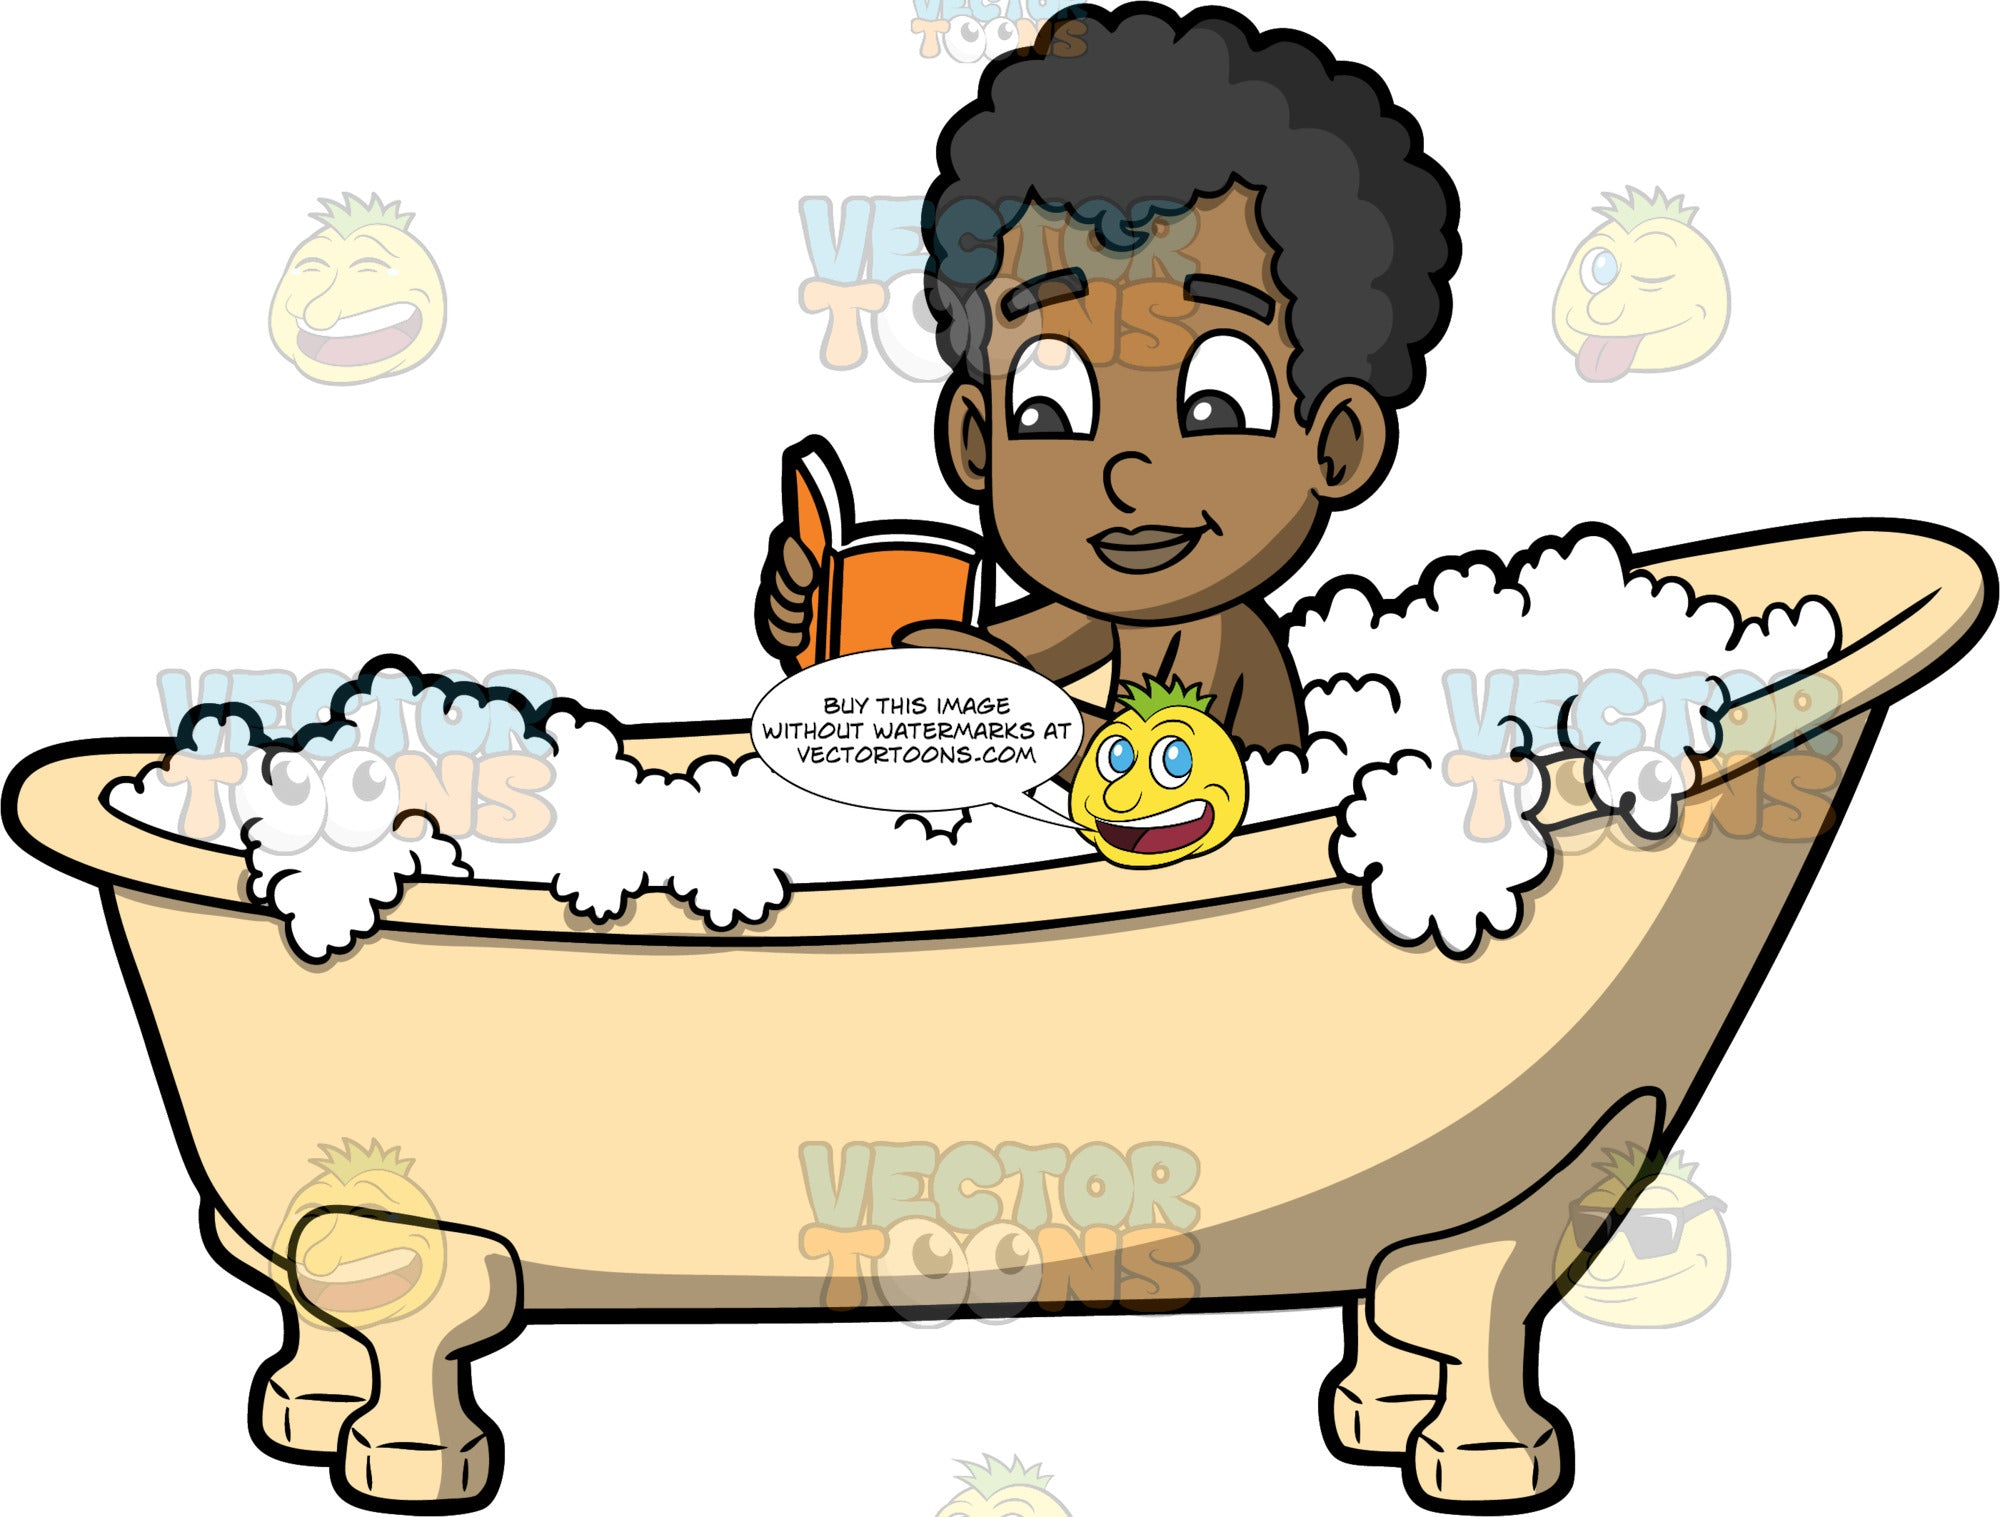 Young Jimmy Reading A Book In The Bathtub. A black boy sitting in a claw footed bathtub filled with bubbles and reading a book with an orange cover